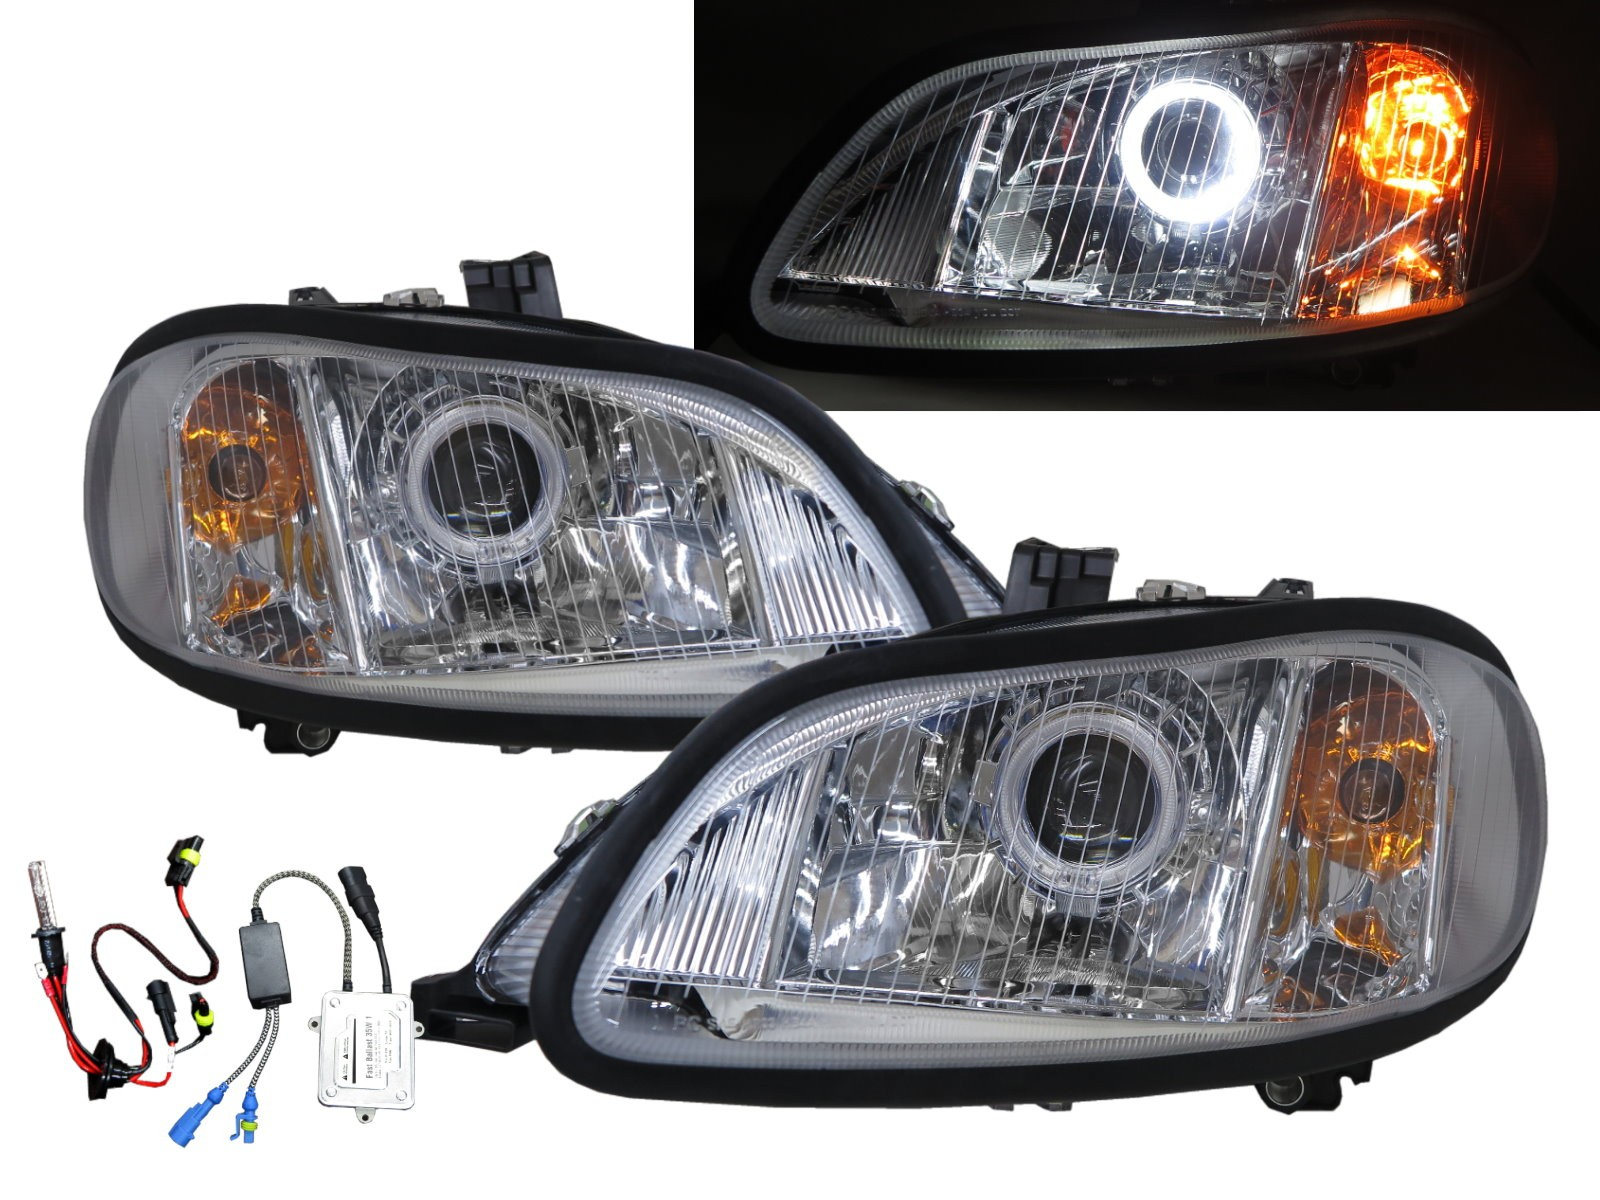 CrazyTheGod M2 2002-Present Truck 2D Guide LED Angel-Eye Projector HID Headlight Headlamp Chrome for Freightliner LHD